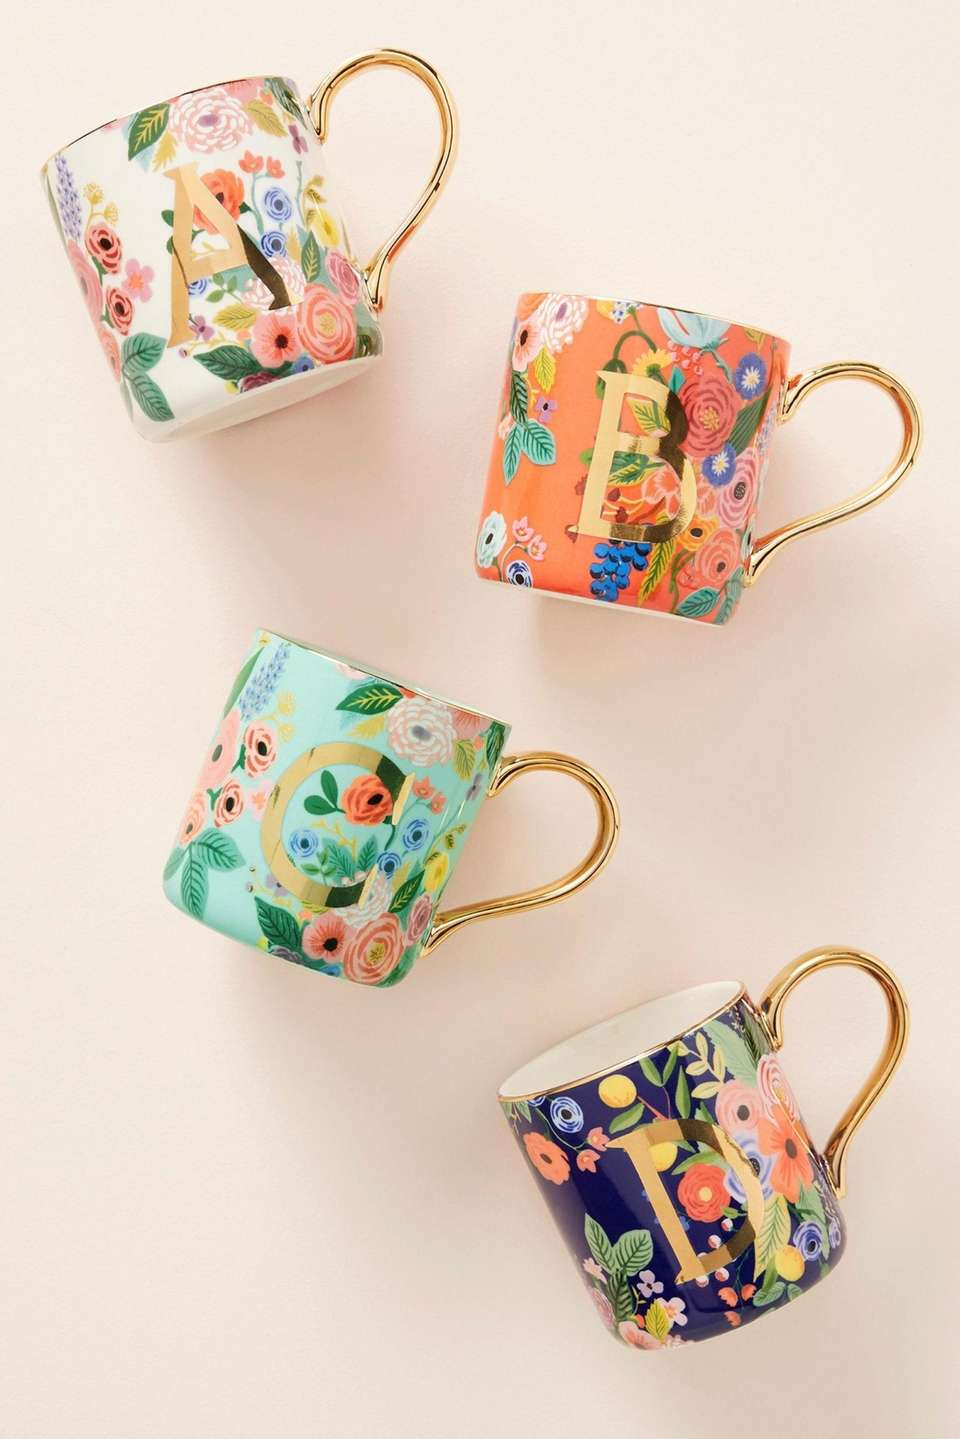 Made exclusively for Anthropologie by Rifle Paper Co.,